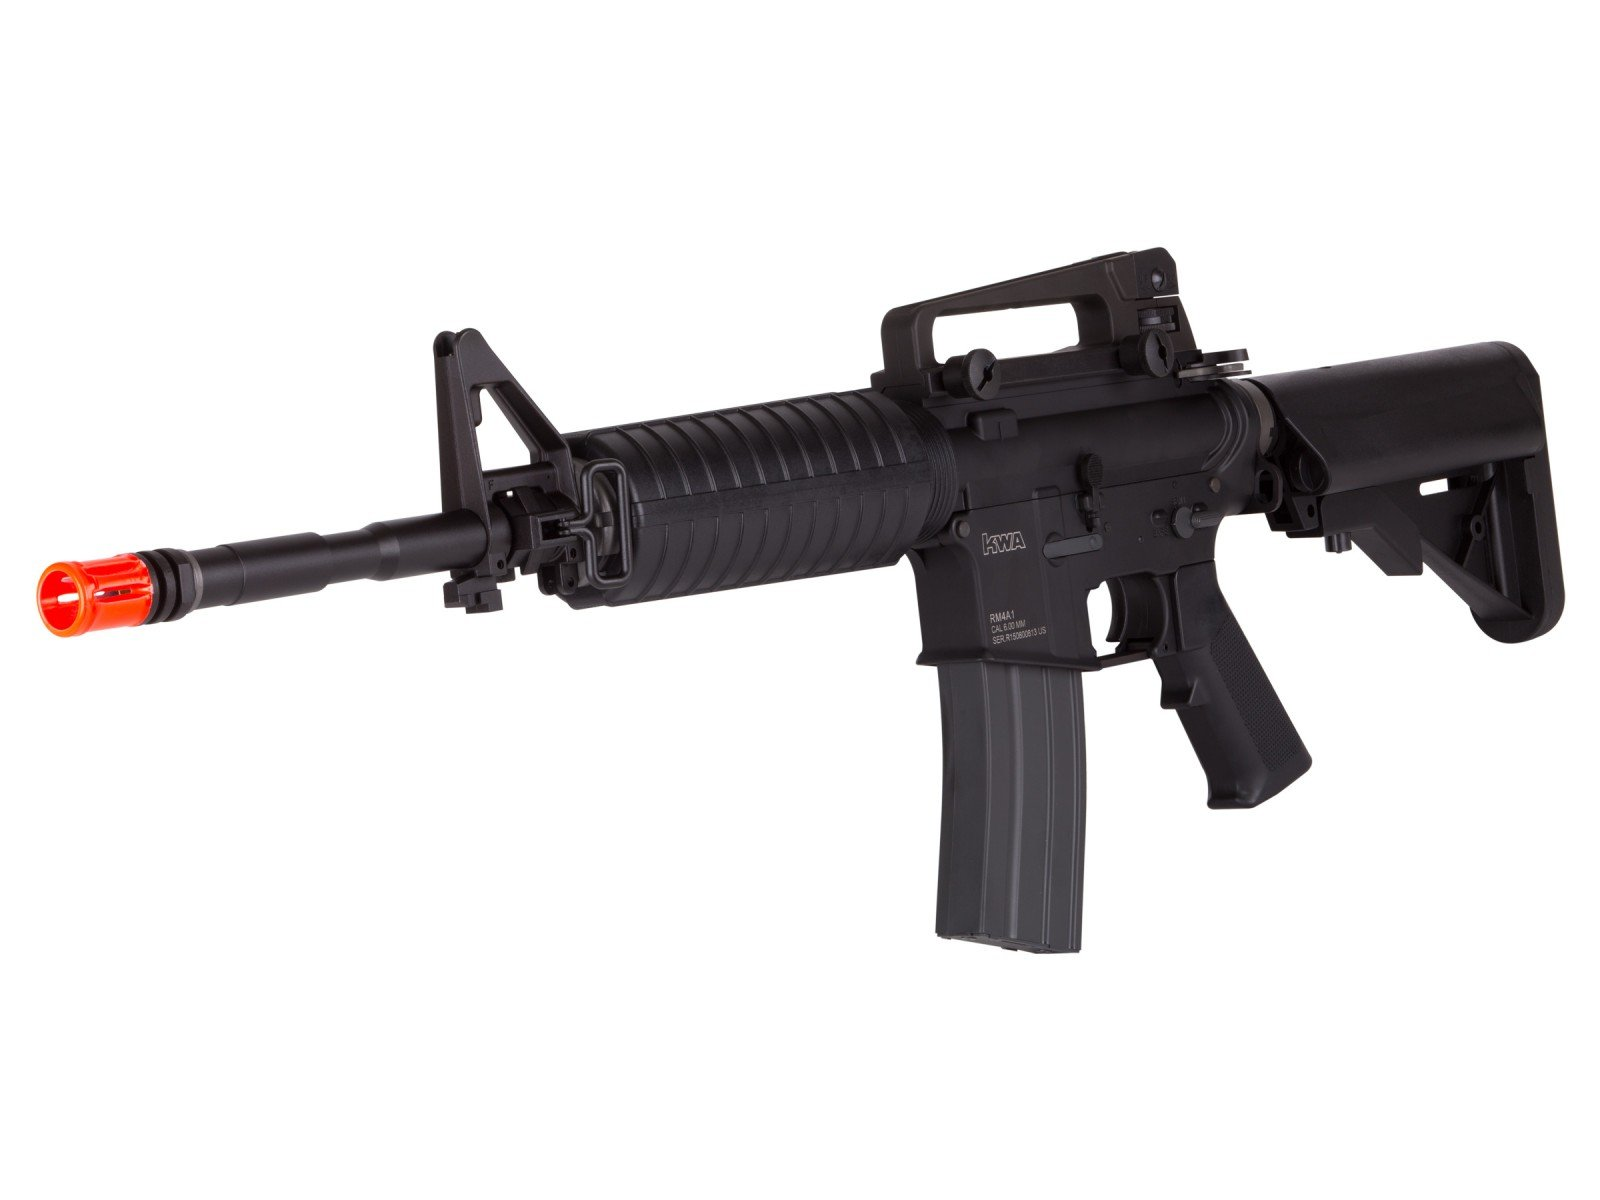 Amazon Com Kwa Full Metal Rm4 A1 Electric Recoil Erg Airsoft Gun Sports Outdoors